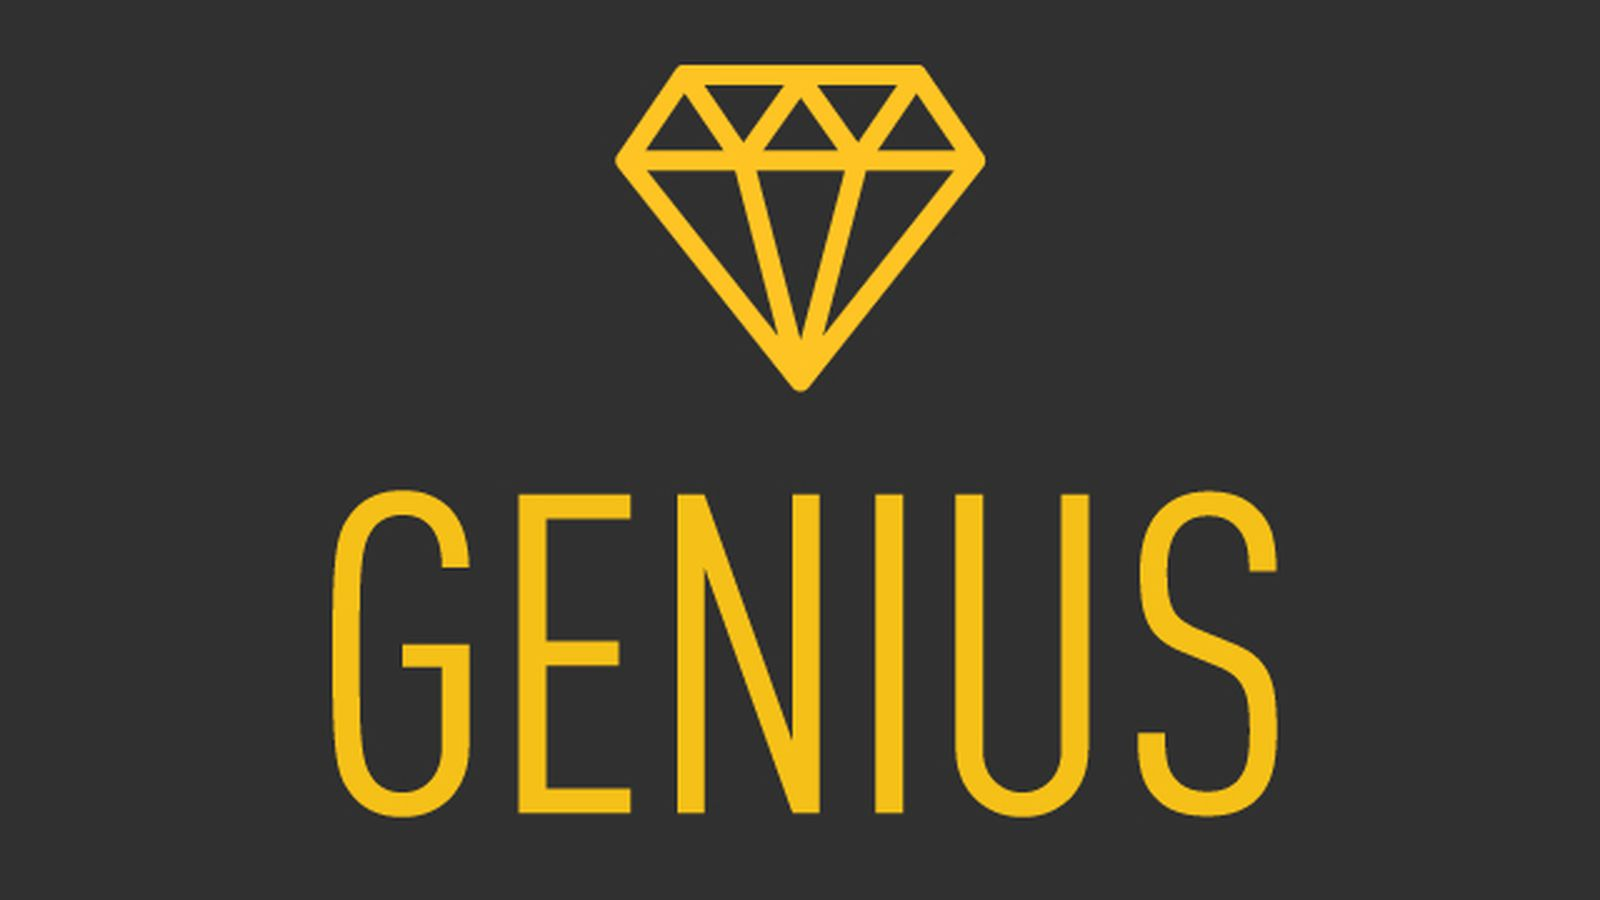 rap genius rebrands itself 39 genius 39 as part of mission to 39 annotate the world 39 the verge. Black Bedroom Furniture Sets. Home Design Ideas